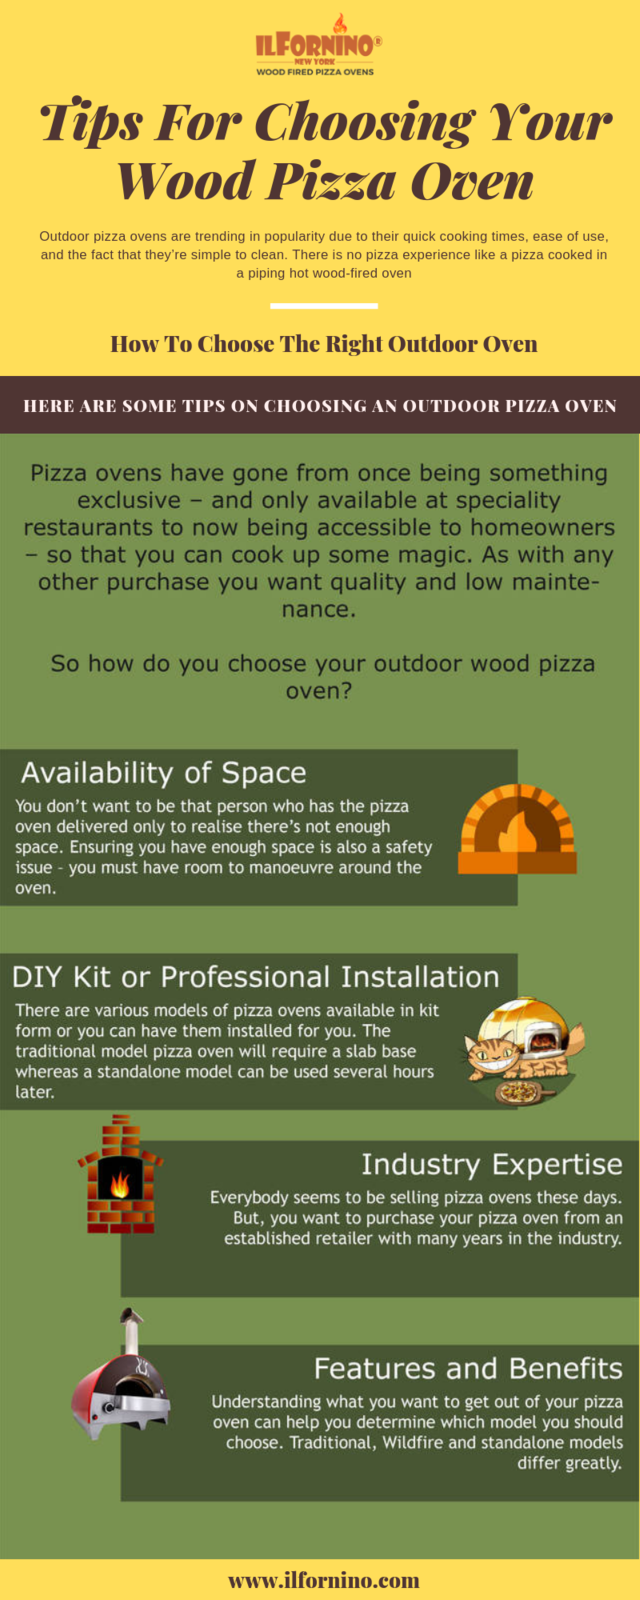 Tips for choosing your wood pizza oven